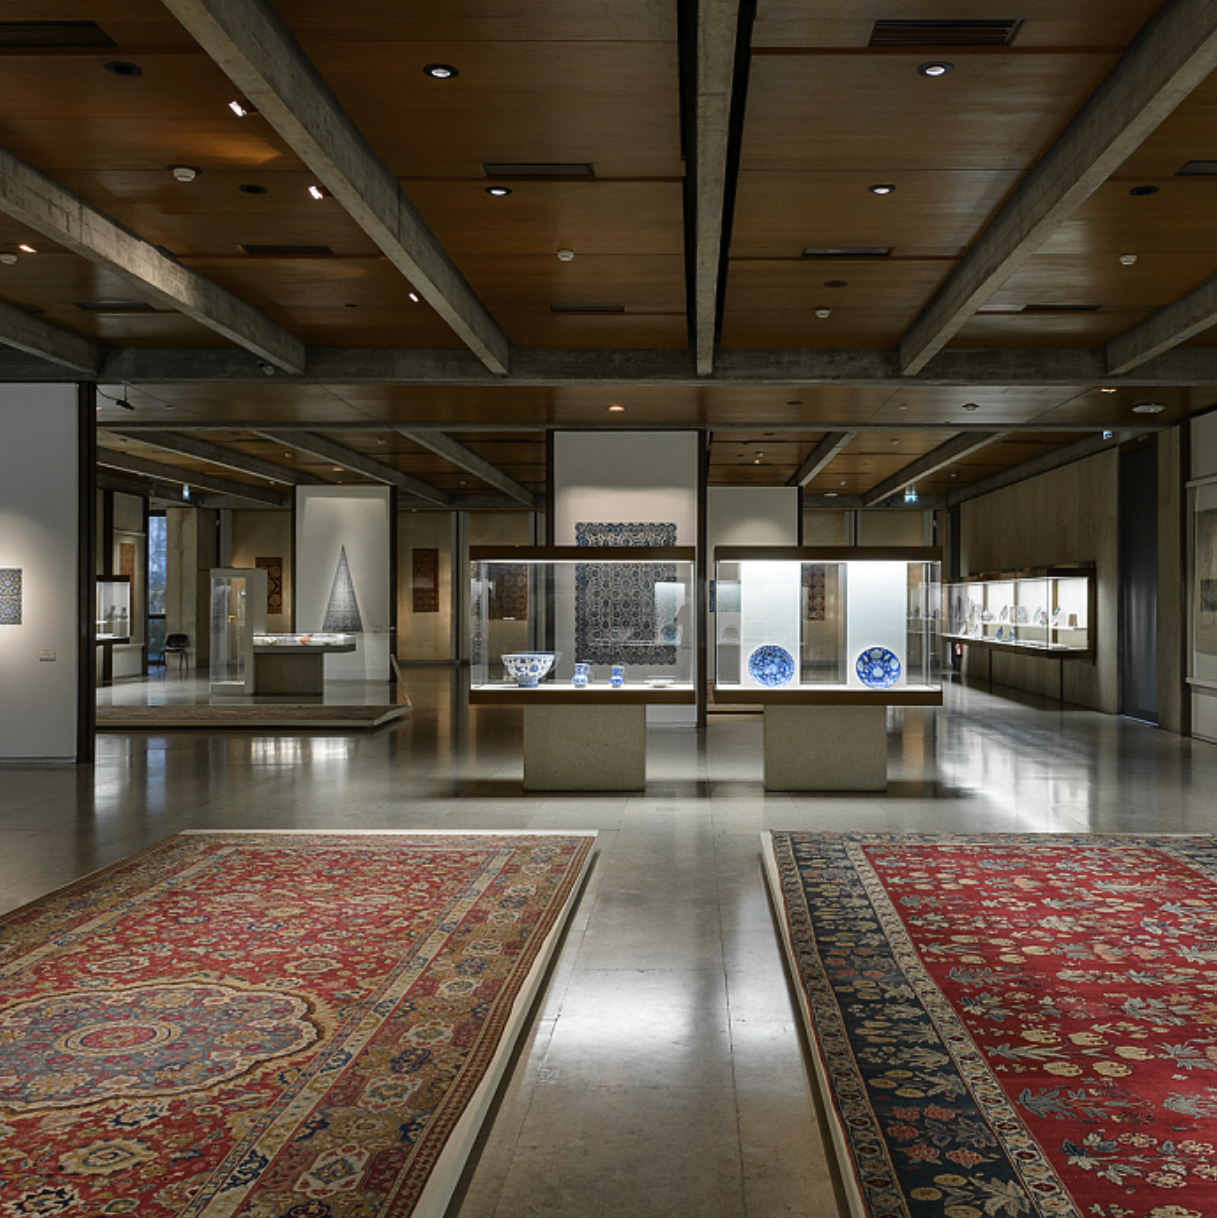 Installation view of the Calouste Gulbenkian Museum